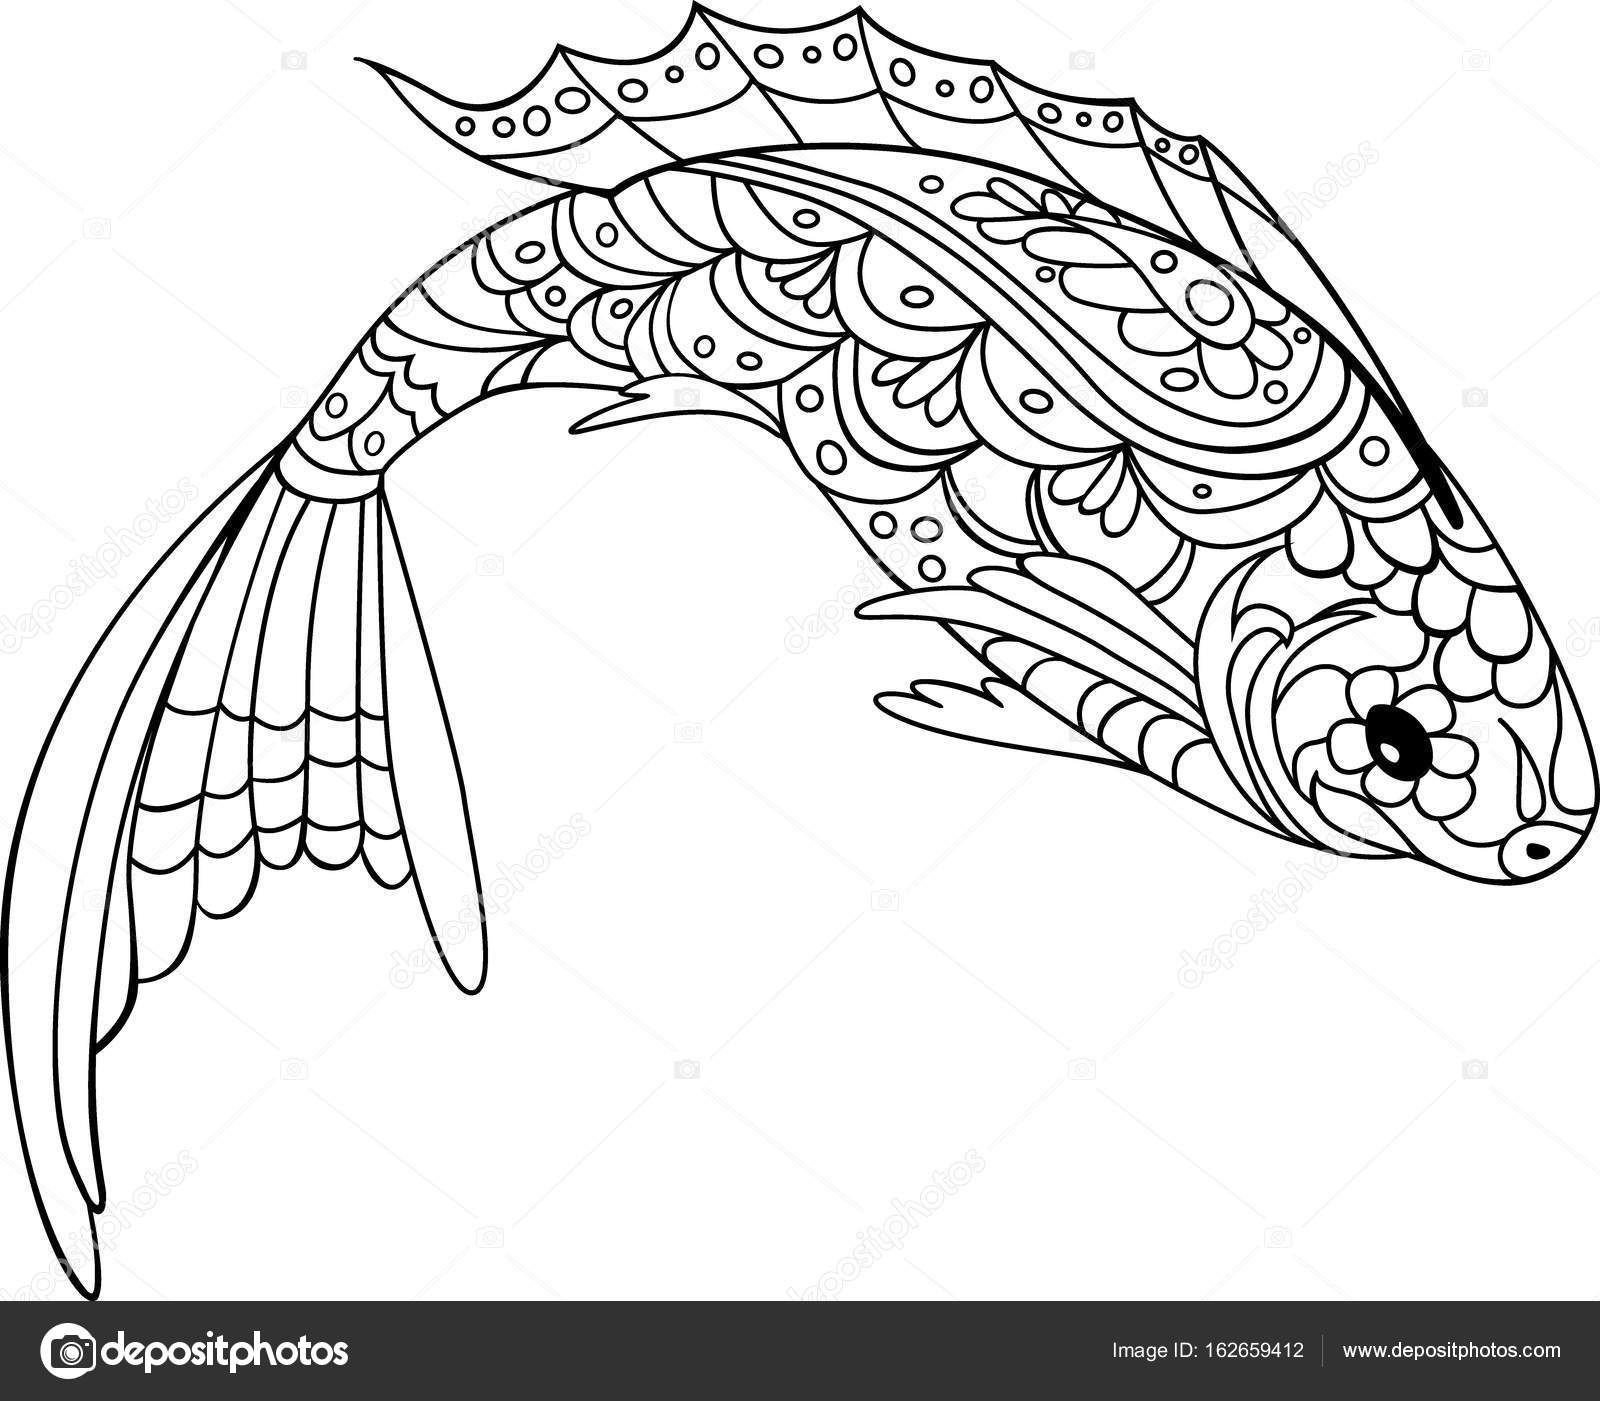 fish zentangle style. Coloring book for adult and kids